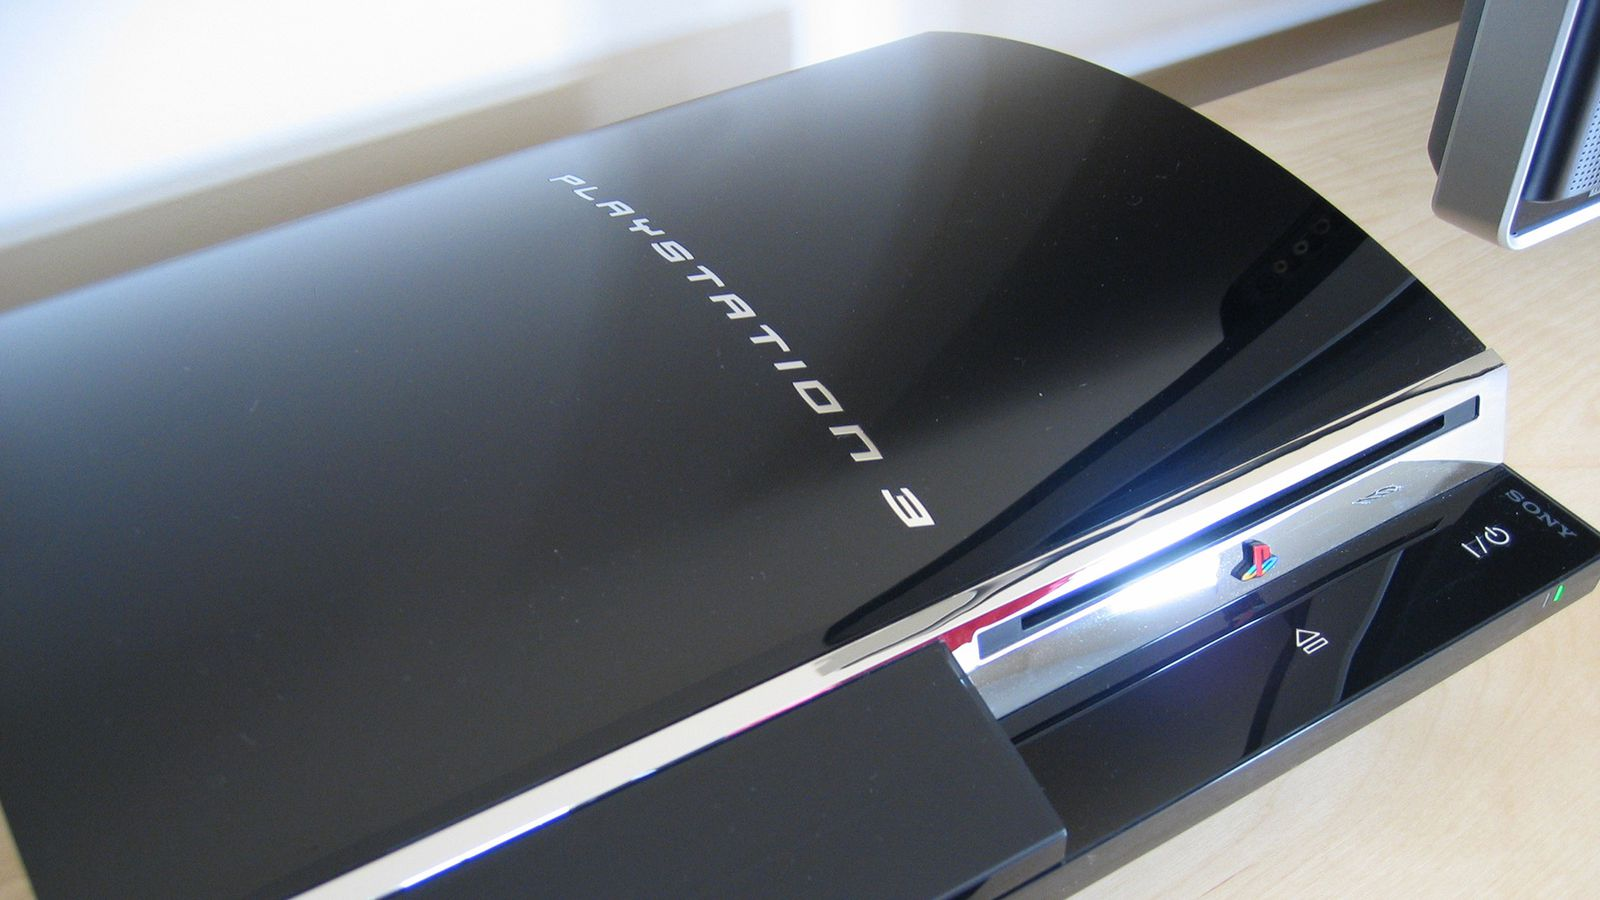 PS3 Owners Can Now File Claims In Class Action Linux